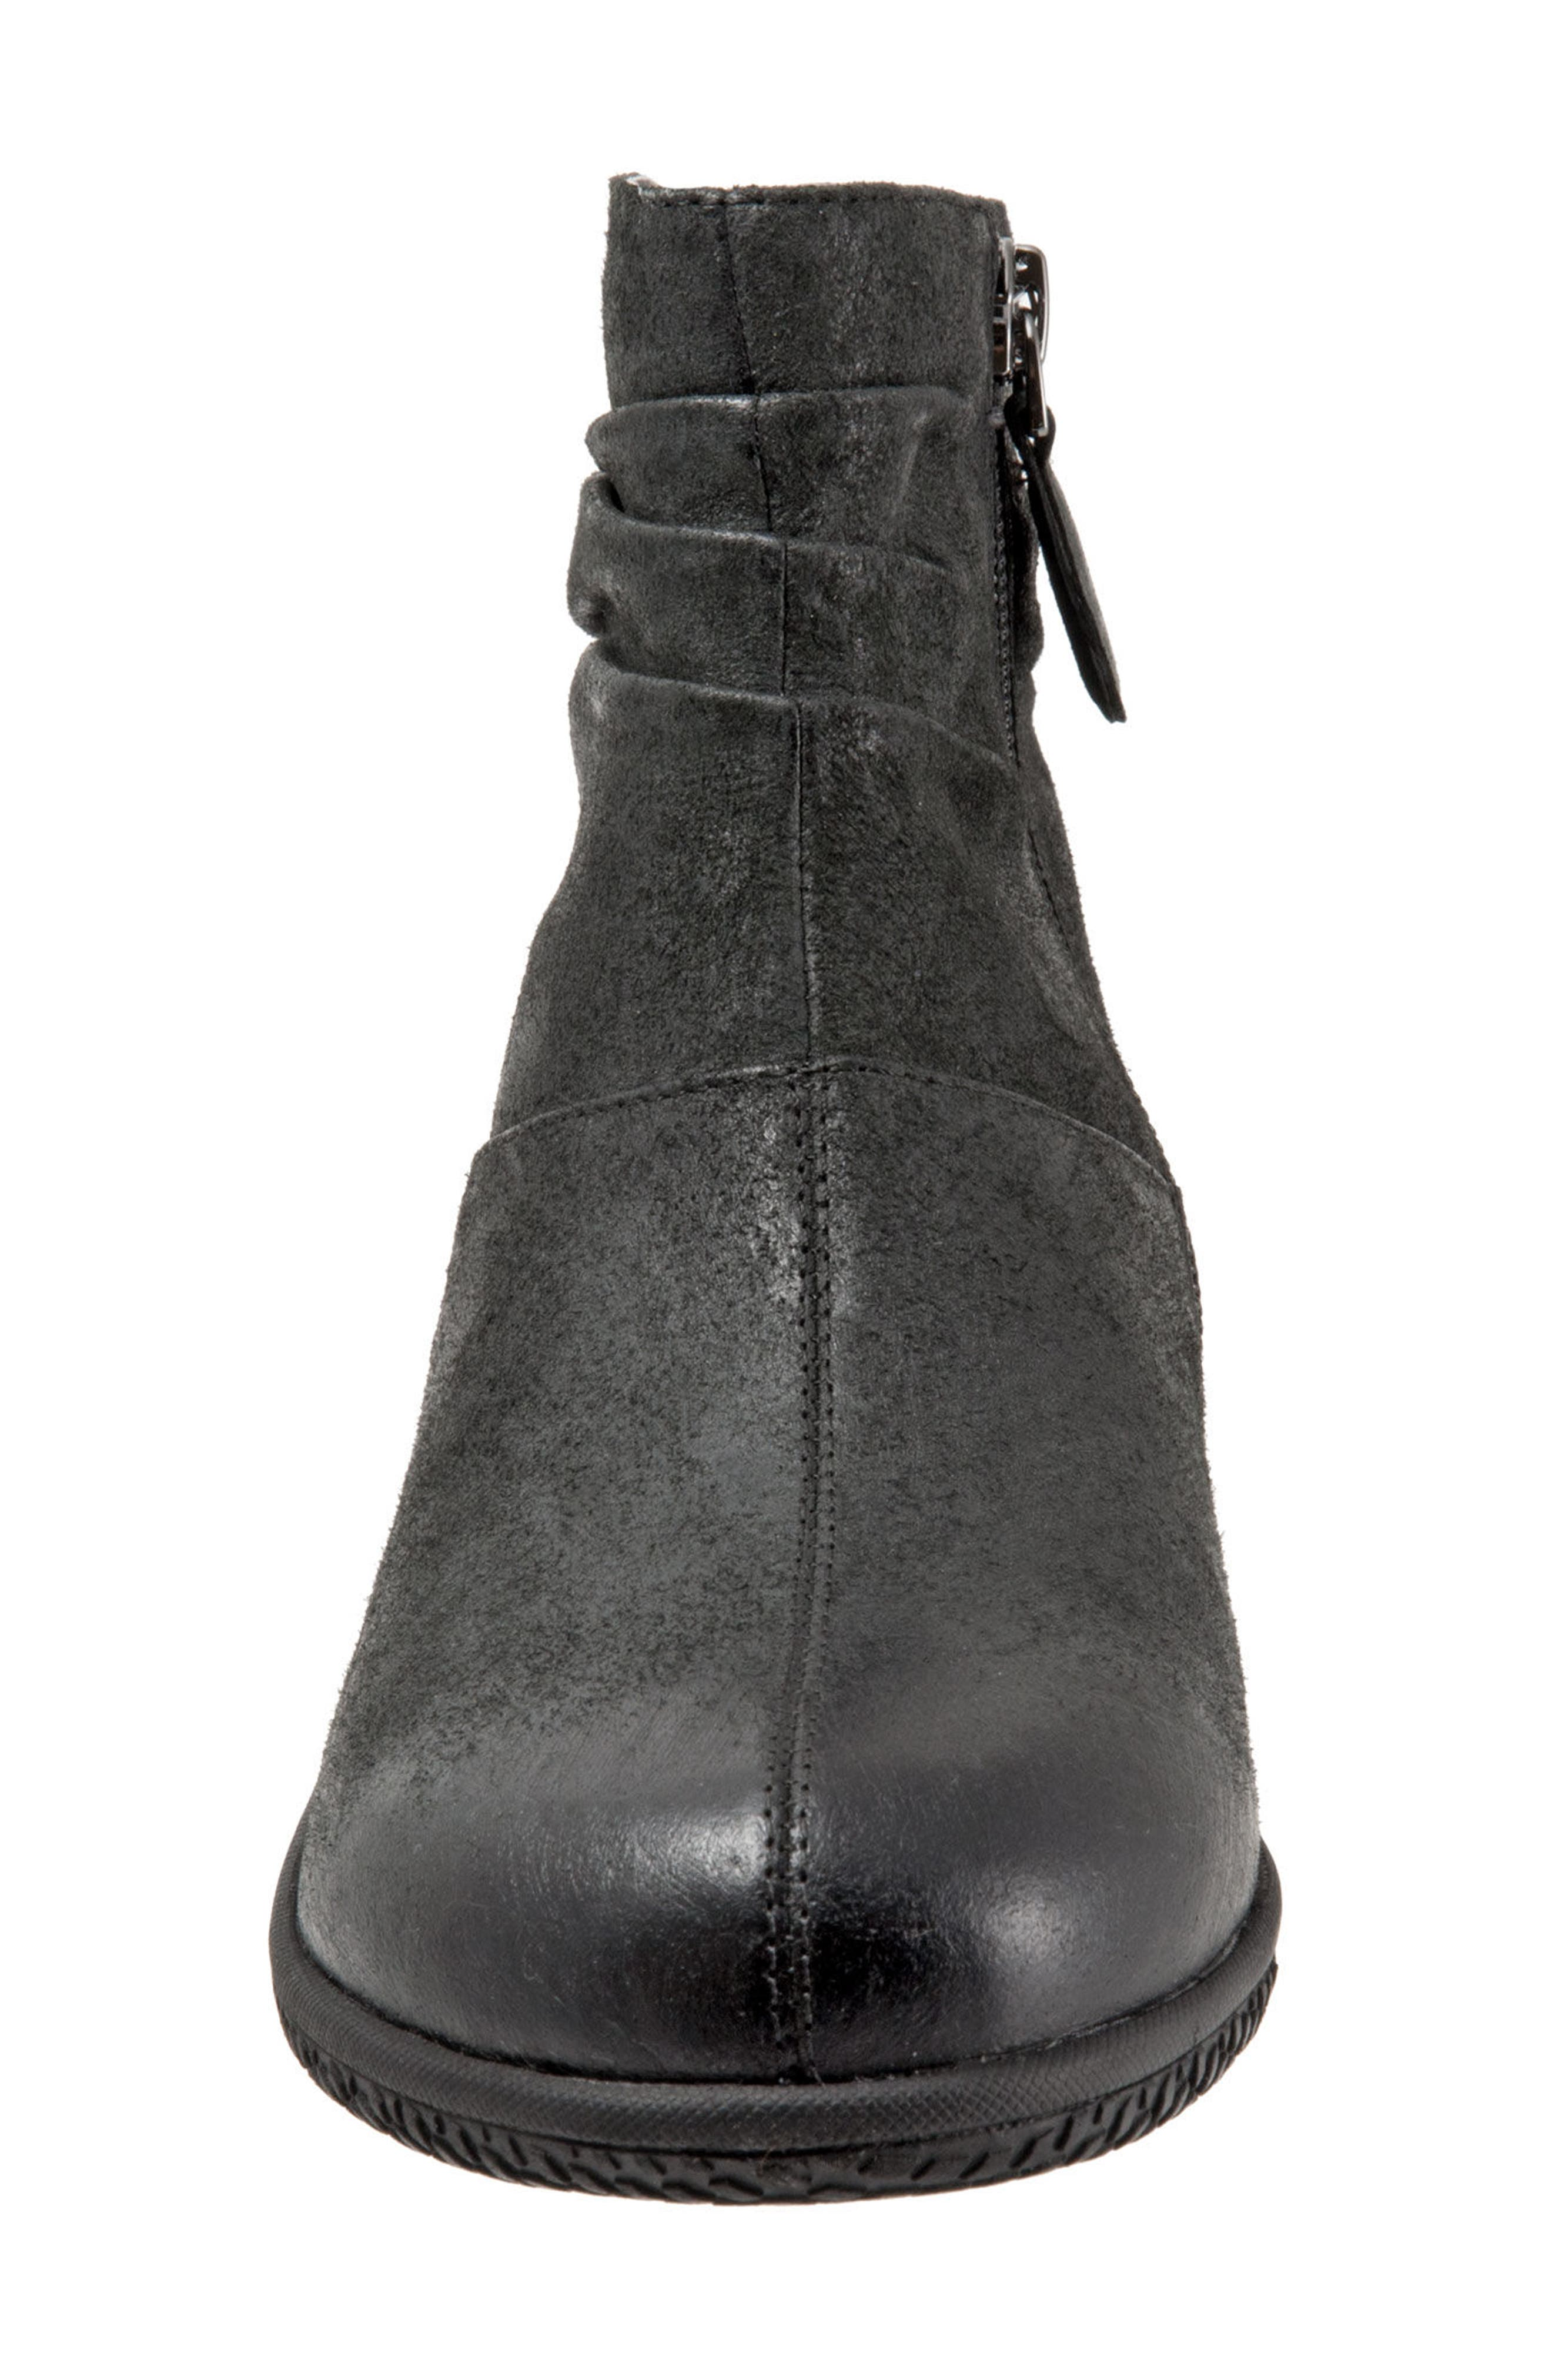 'Hanover' Leather Boot,                             Alternate thumbnail 4, color,                             006